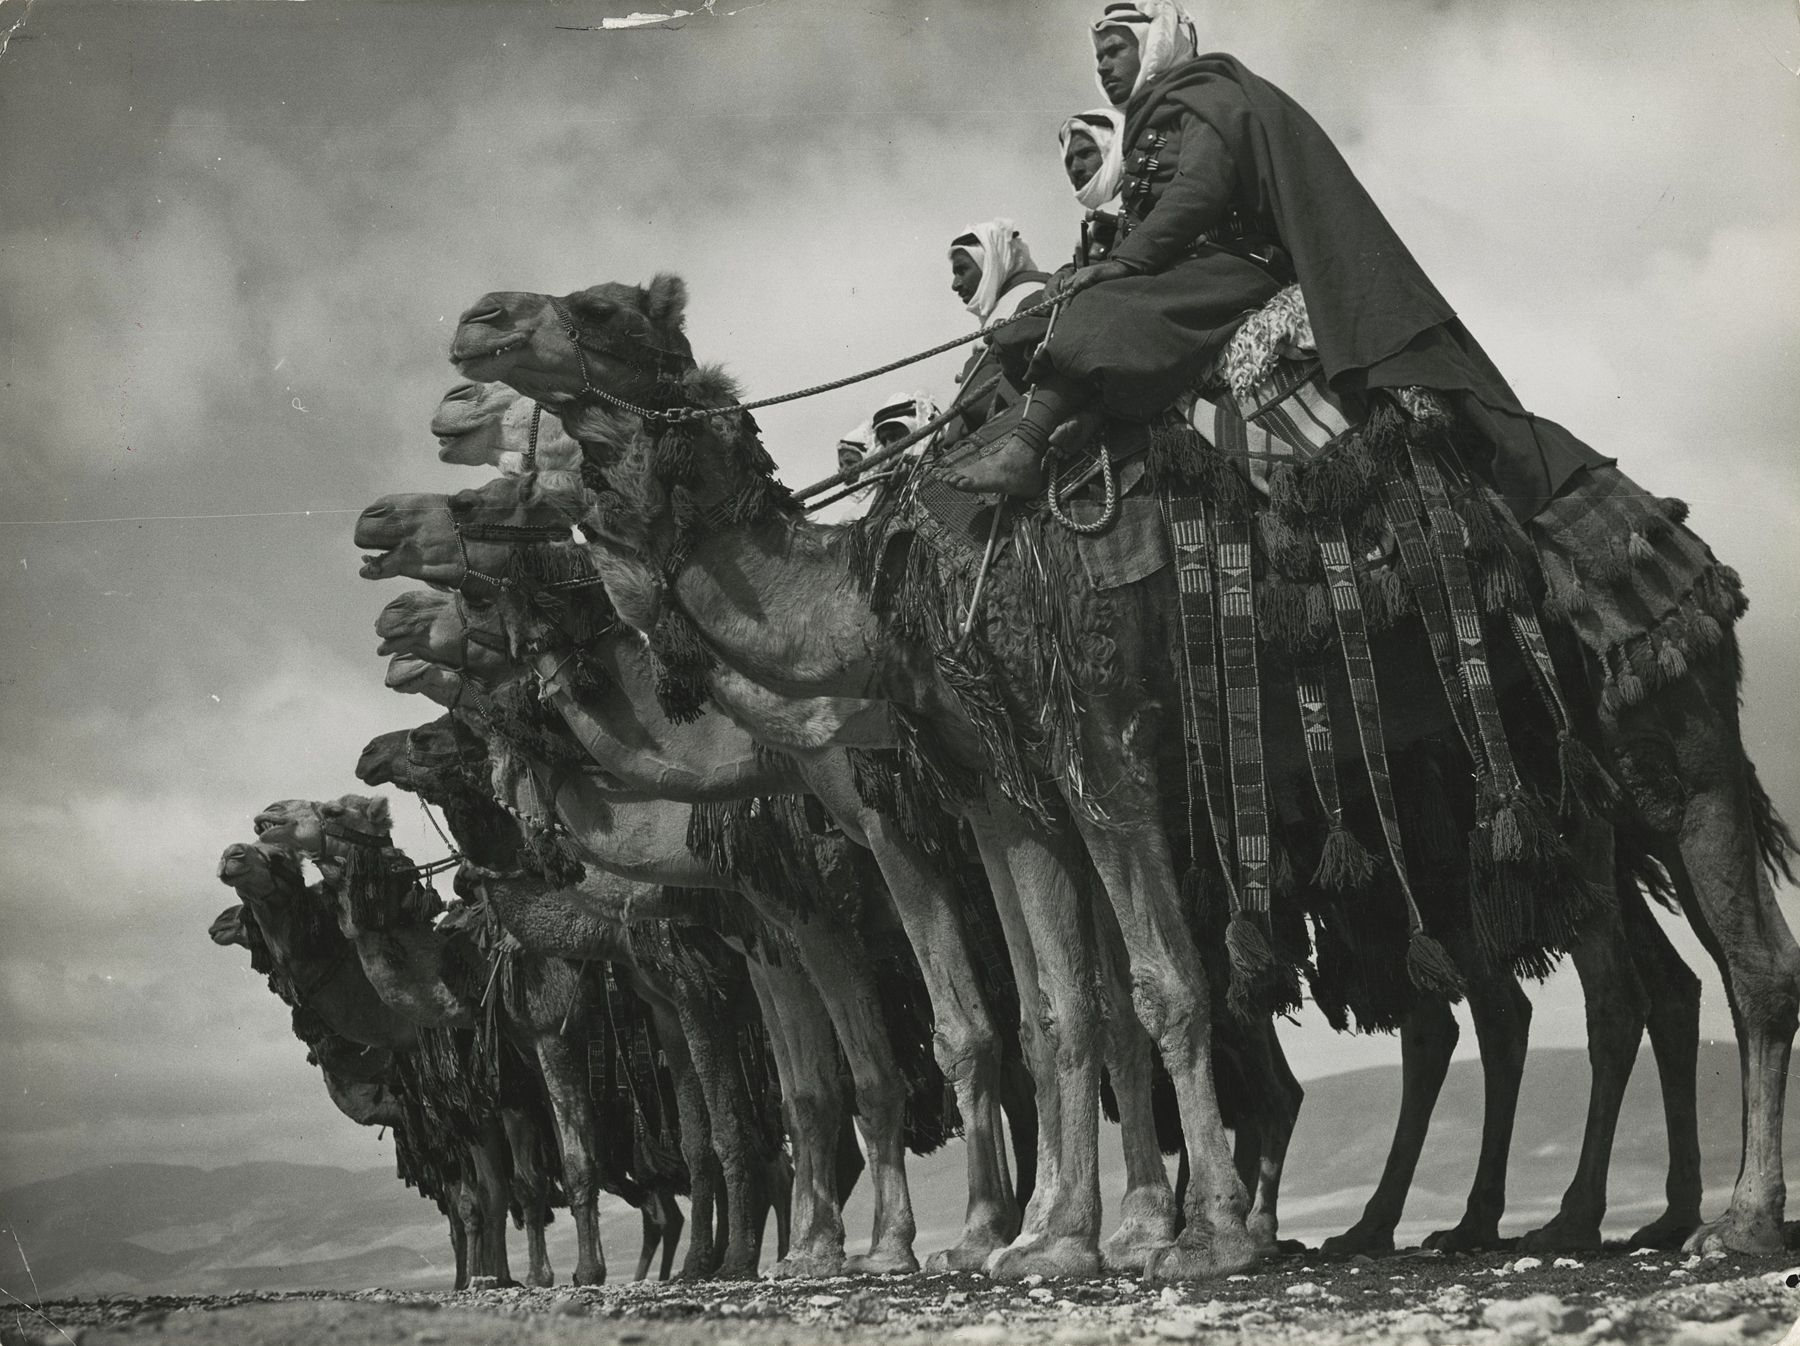 Margaret Bourke-White: Syria in 1940 2014 howard greenberg gallery